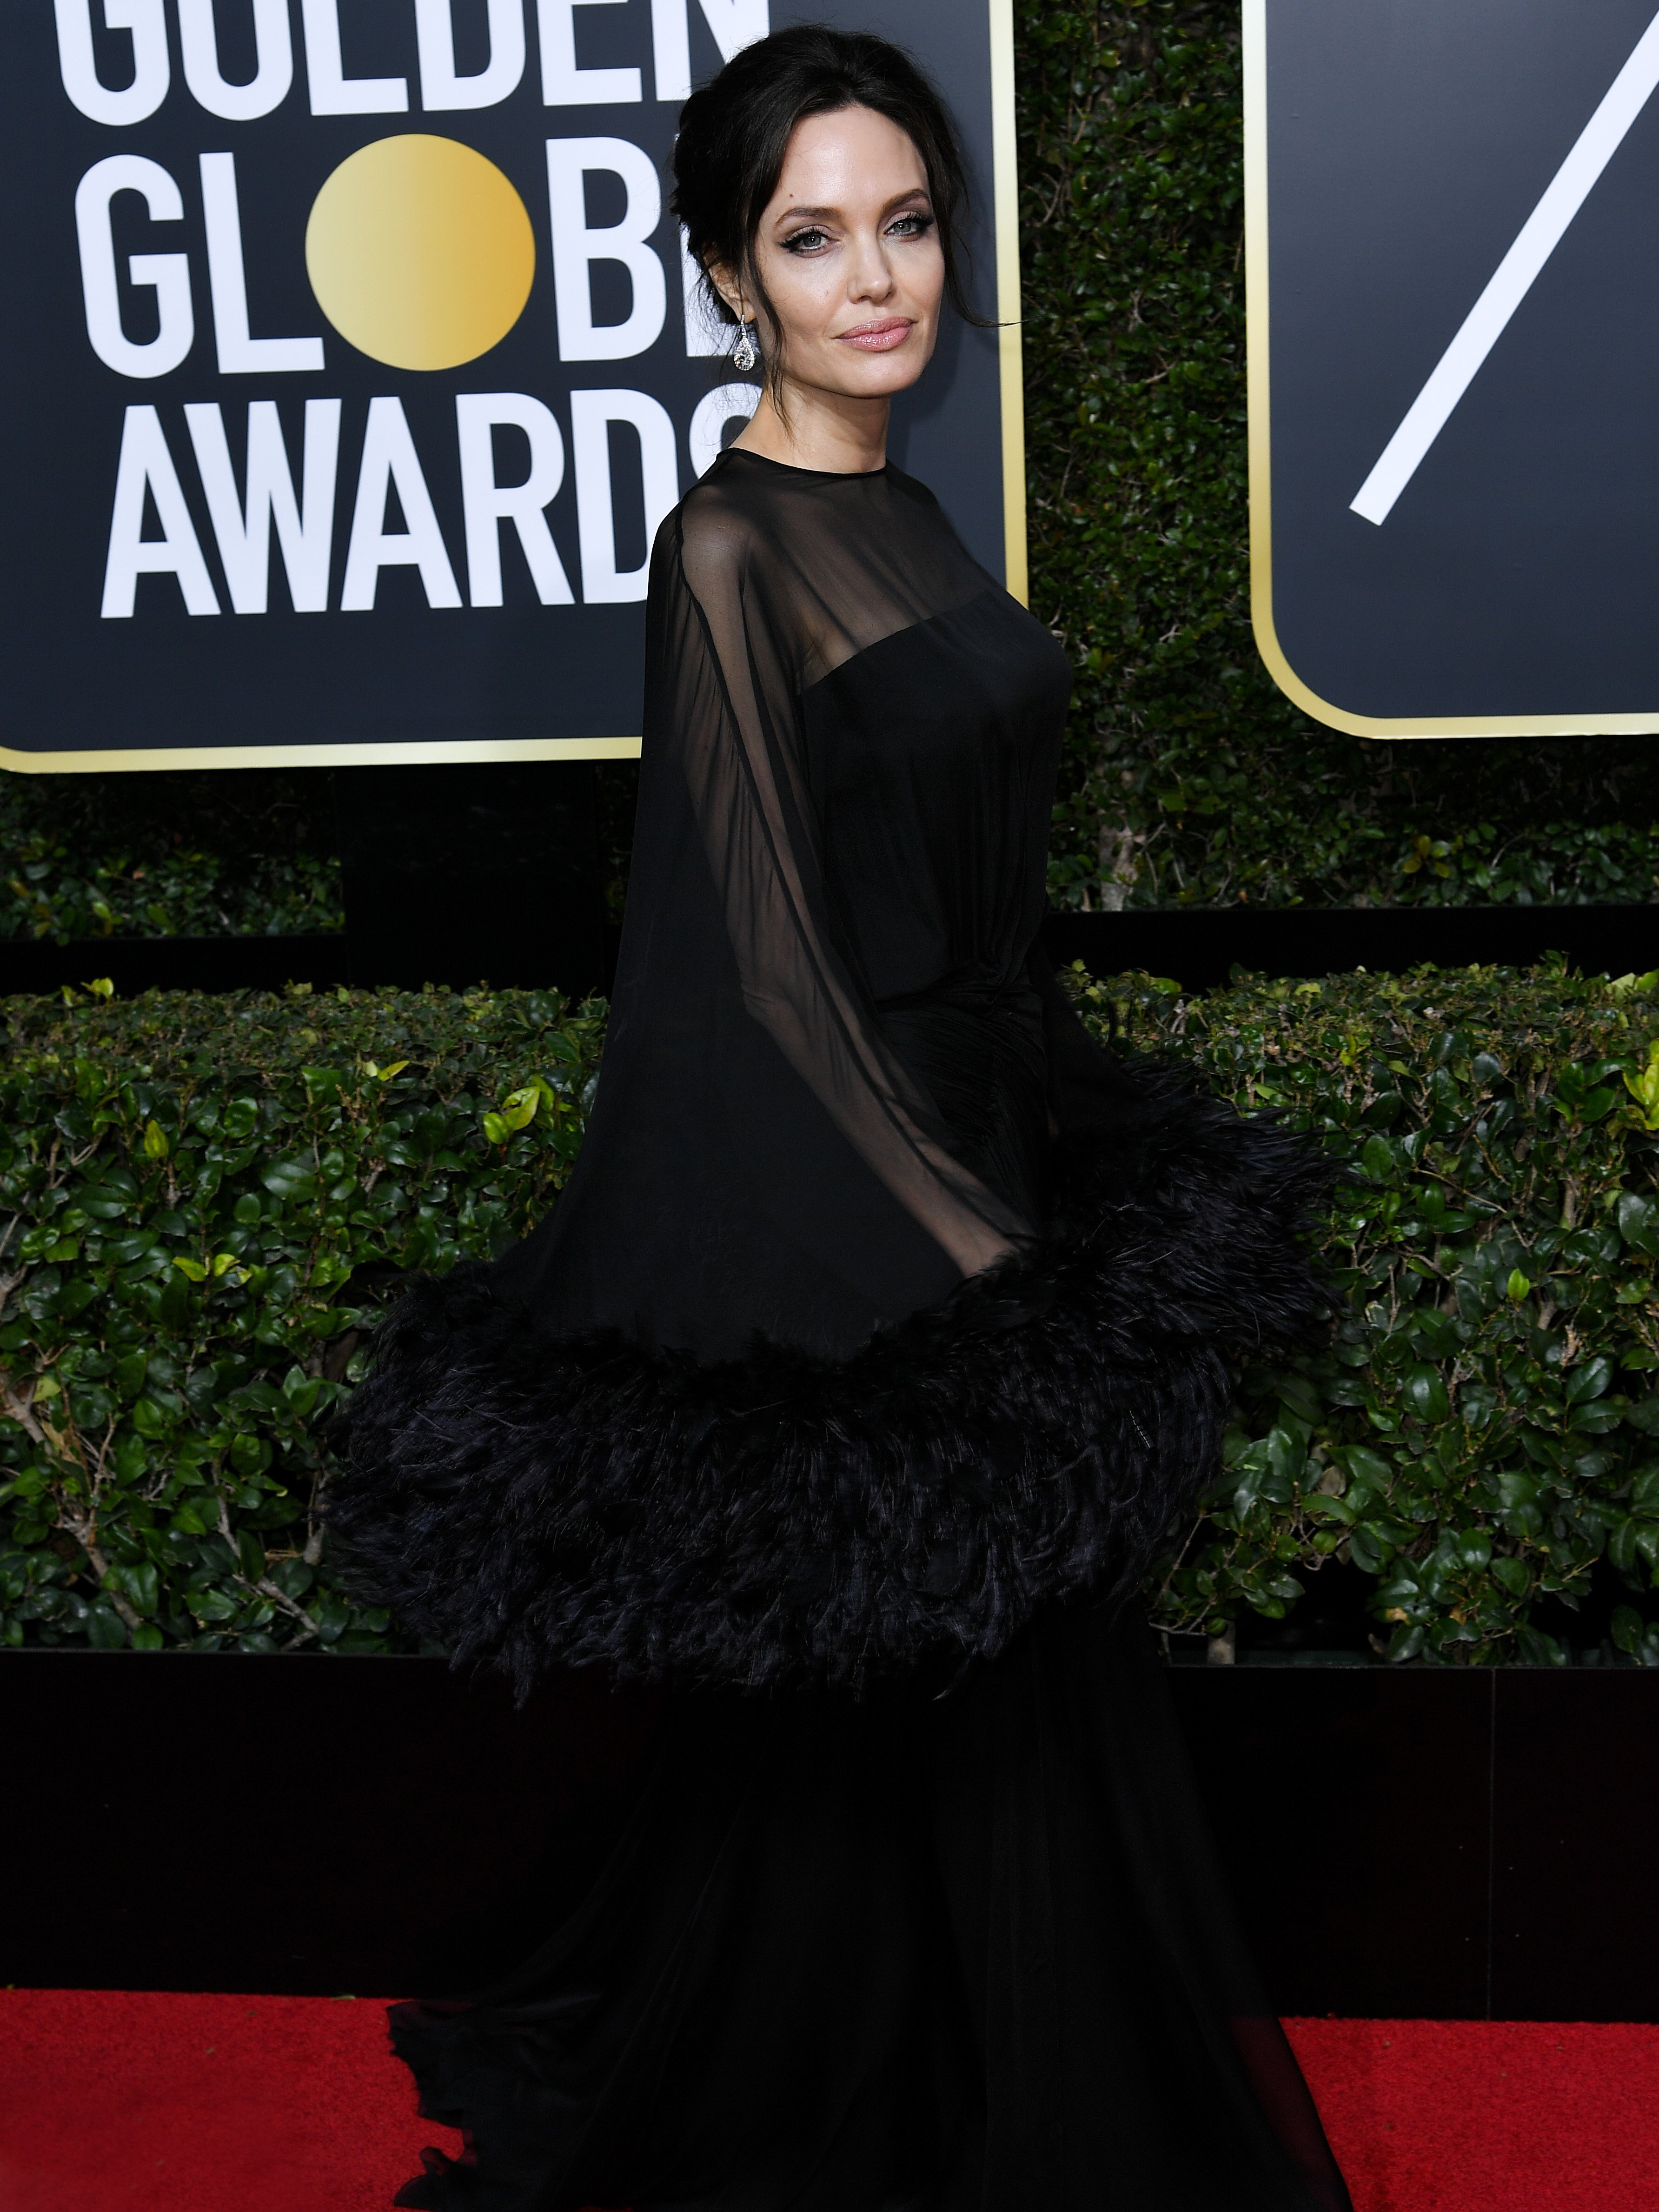 Angelina Jolie arrives at Golden Globes 2018 with unexpected date